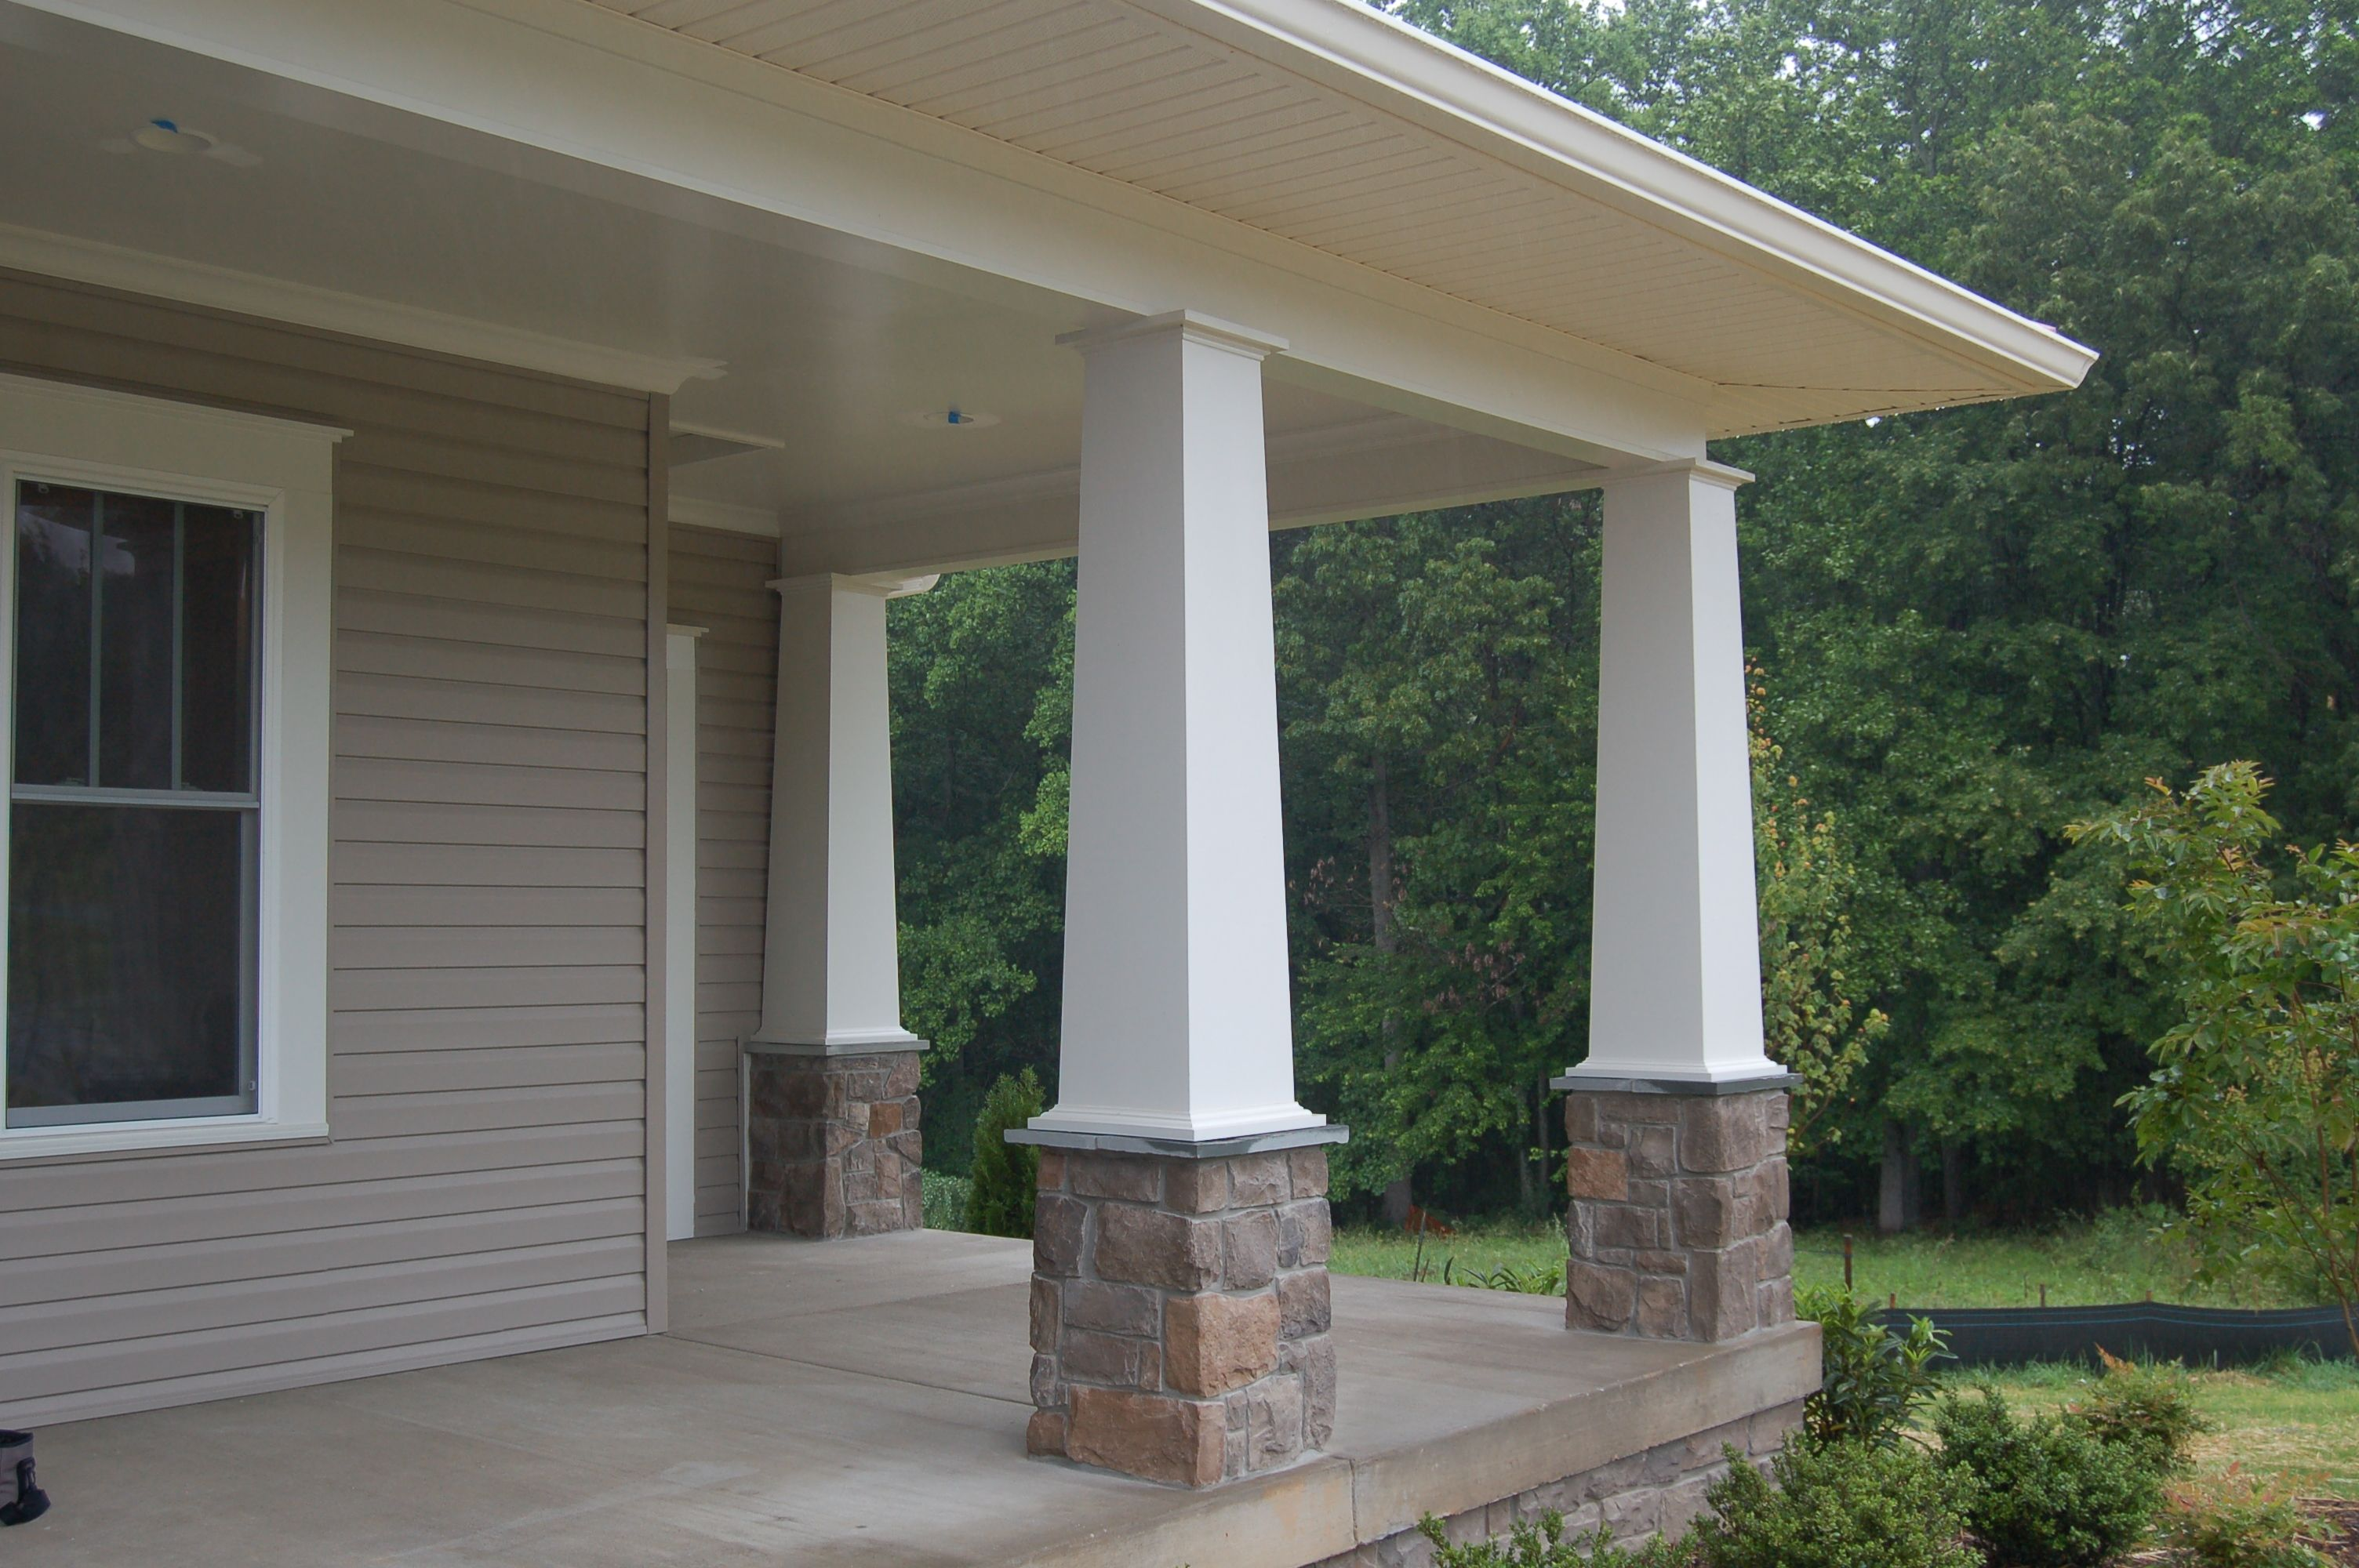 Quaker Kelsea Model With Stone Columns On Front Porch